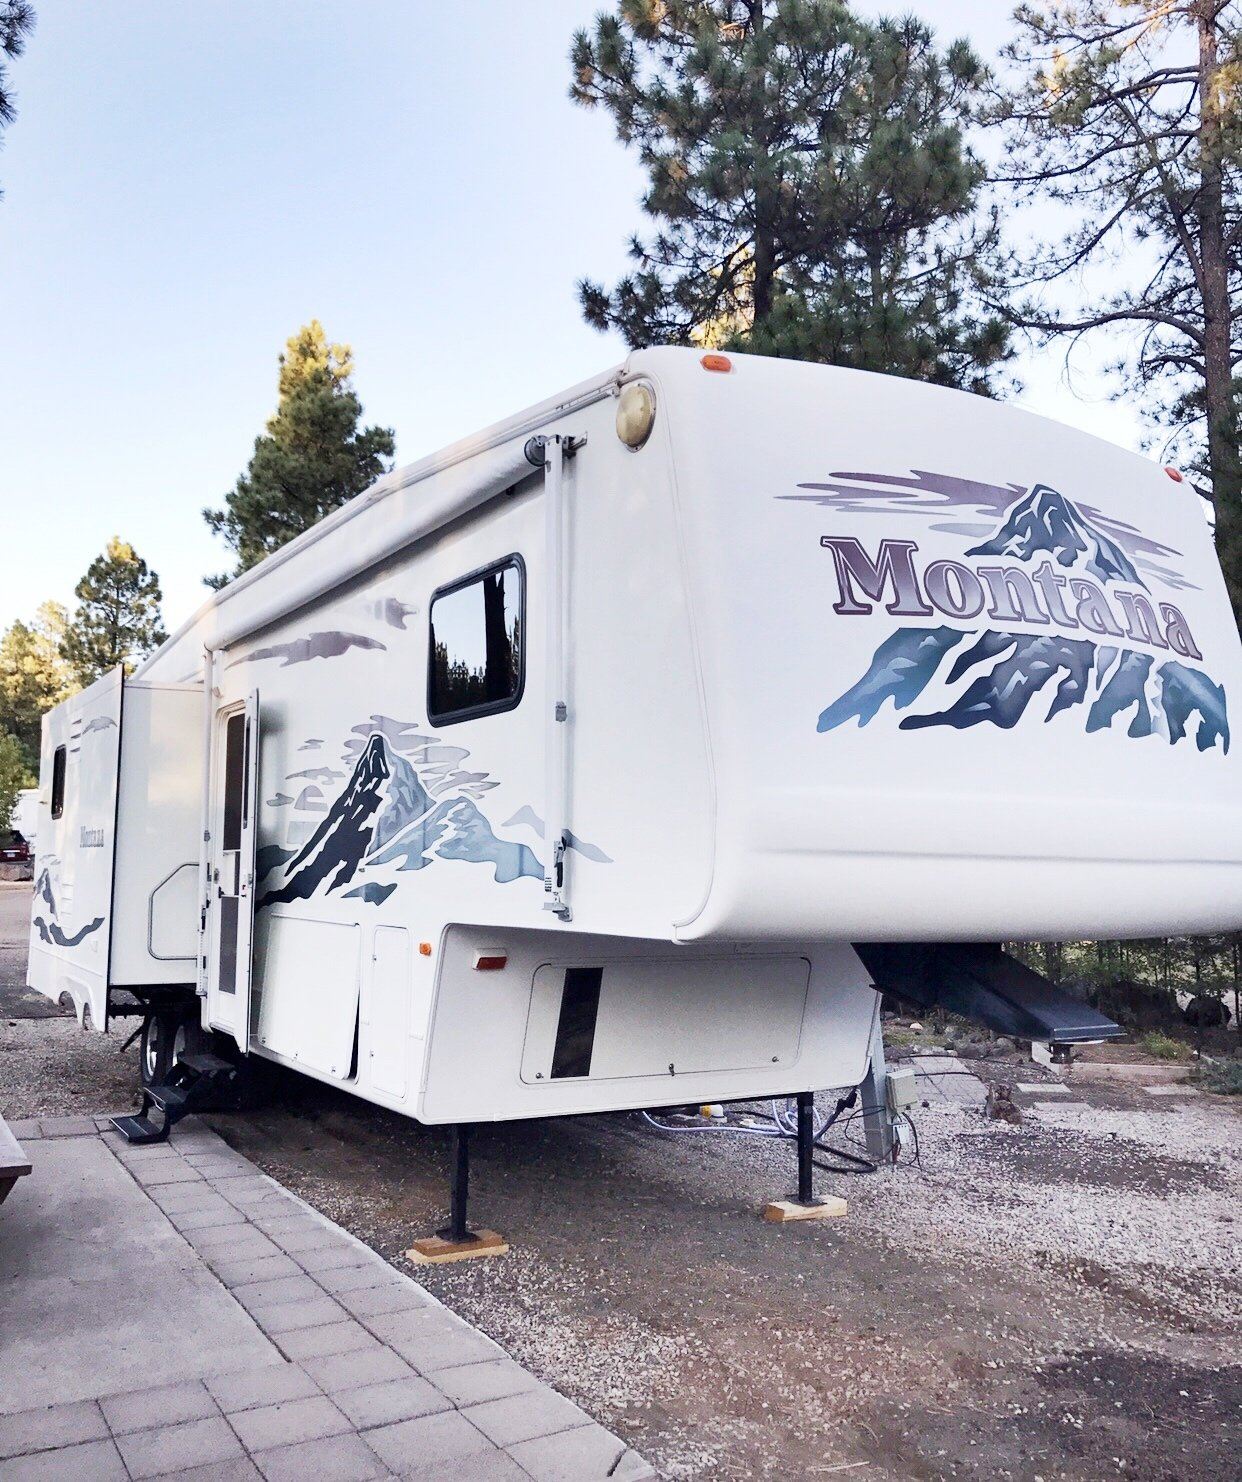 Exterior and Camper Building Type A Jayco Fifth Wheel camper.  Photo 15 of 16 in Hit the Road With This Chic Camper on Sale For $28K